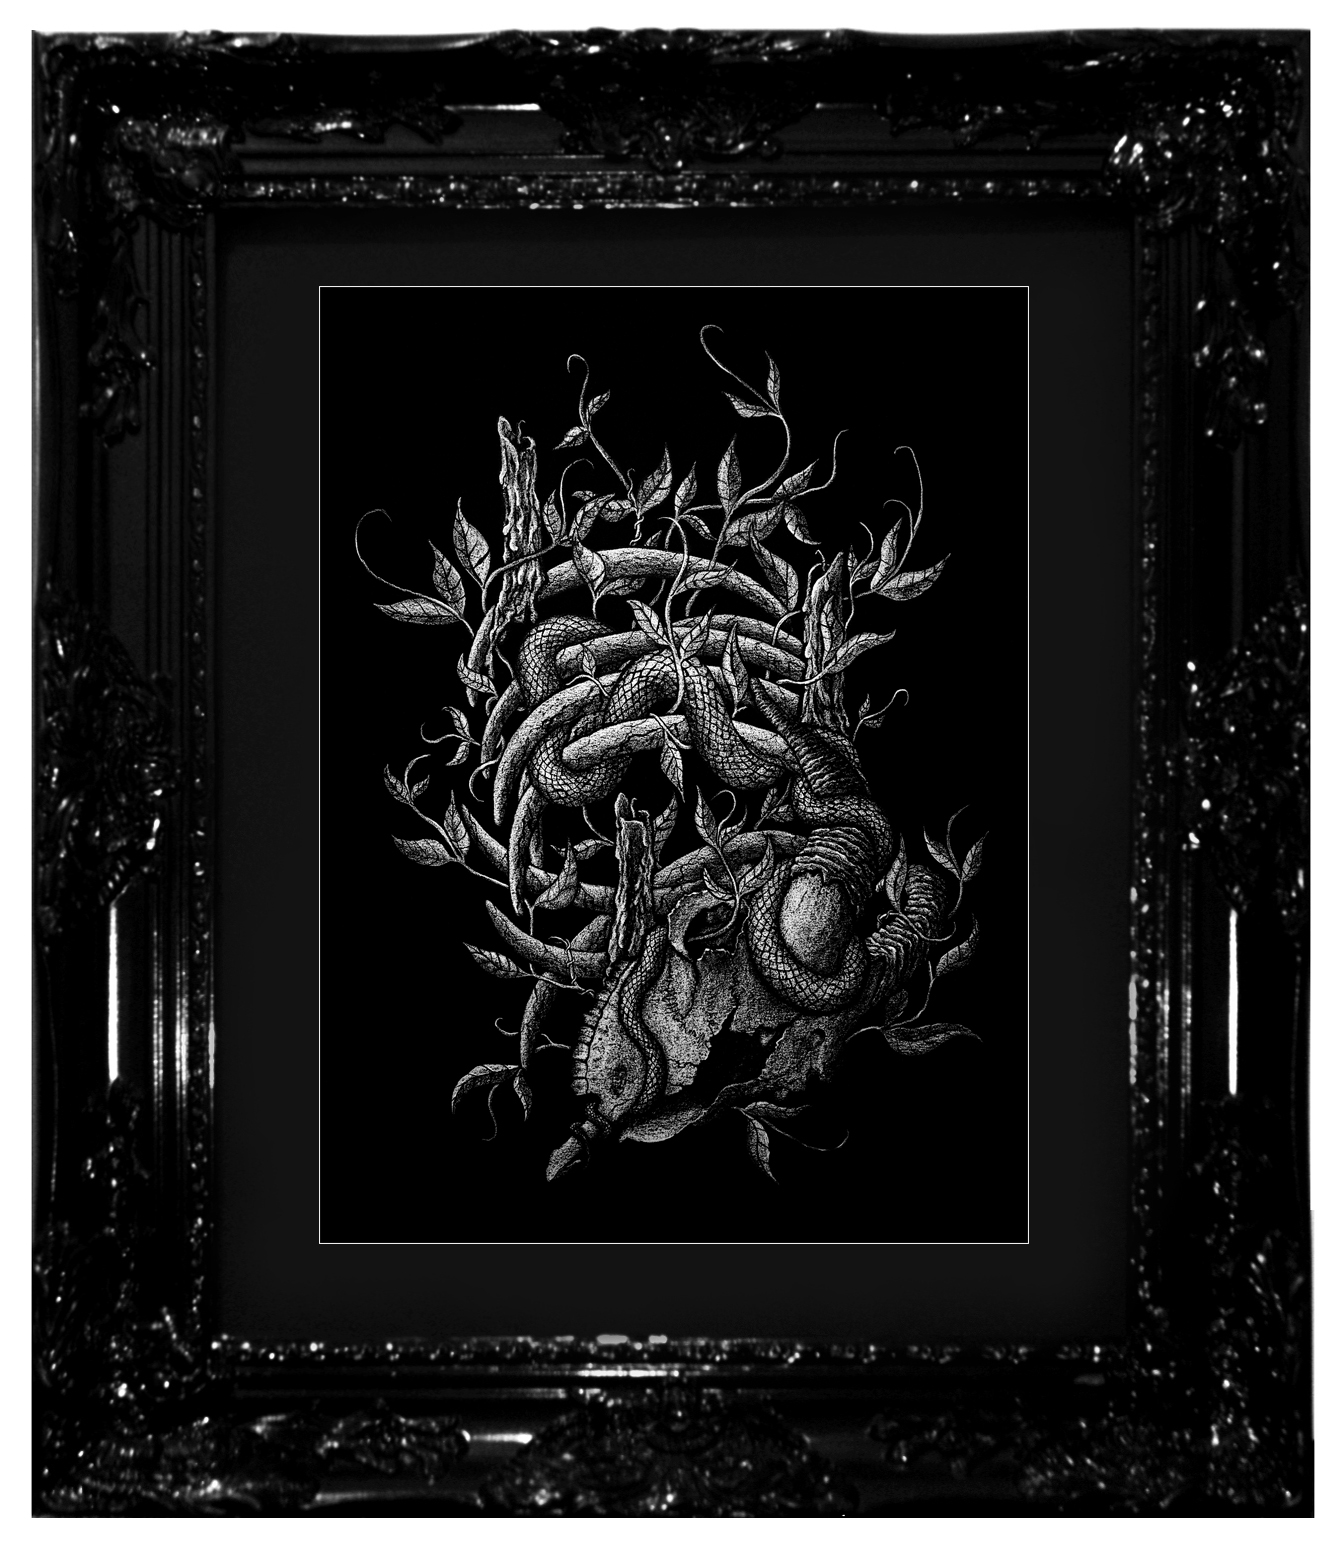 """The Blind-Worm's Sting"", 2017 Ashes, chalk-lead and ink on black cotton-rag paper 16x20"", 18x24"" framed Contact Last Rites Gallery for purchasing information"